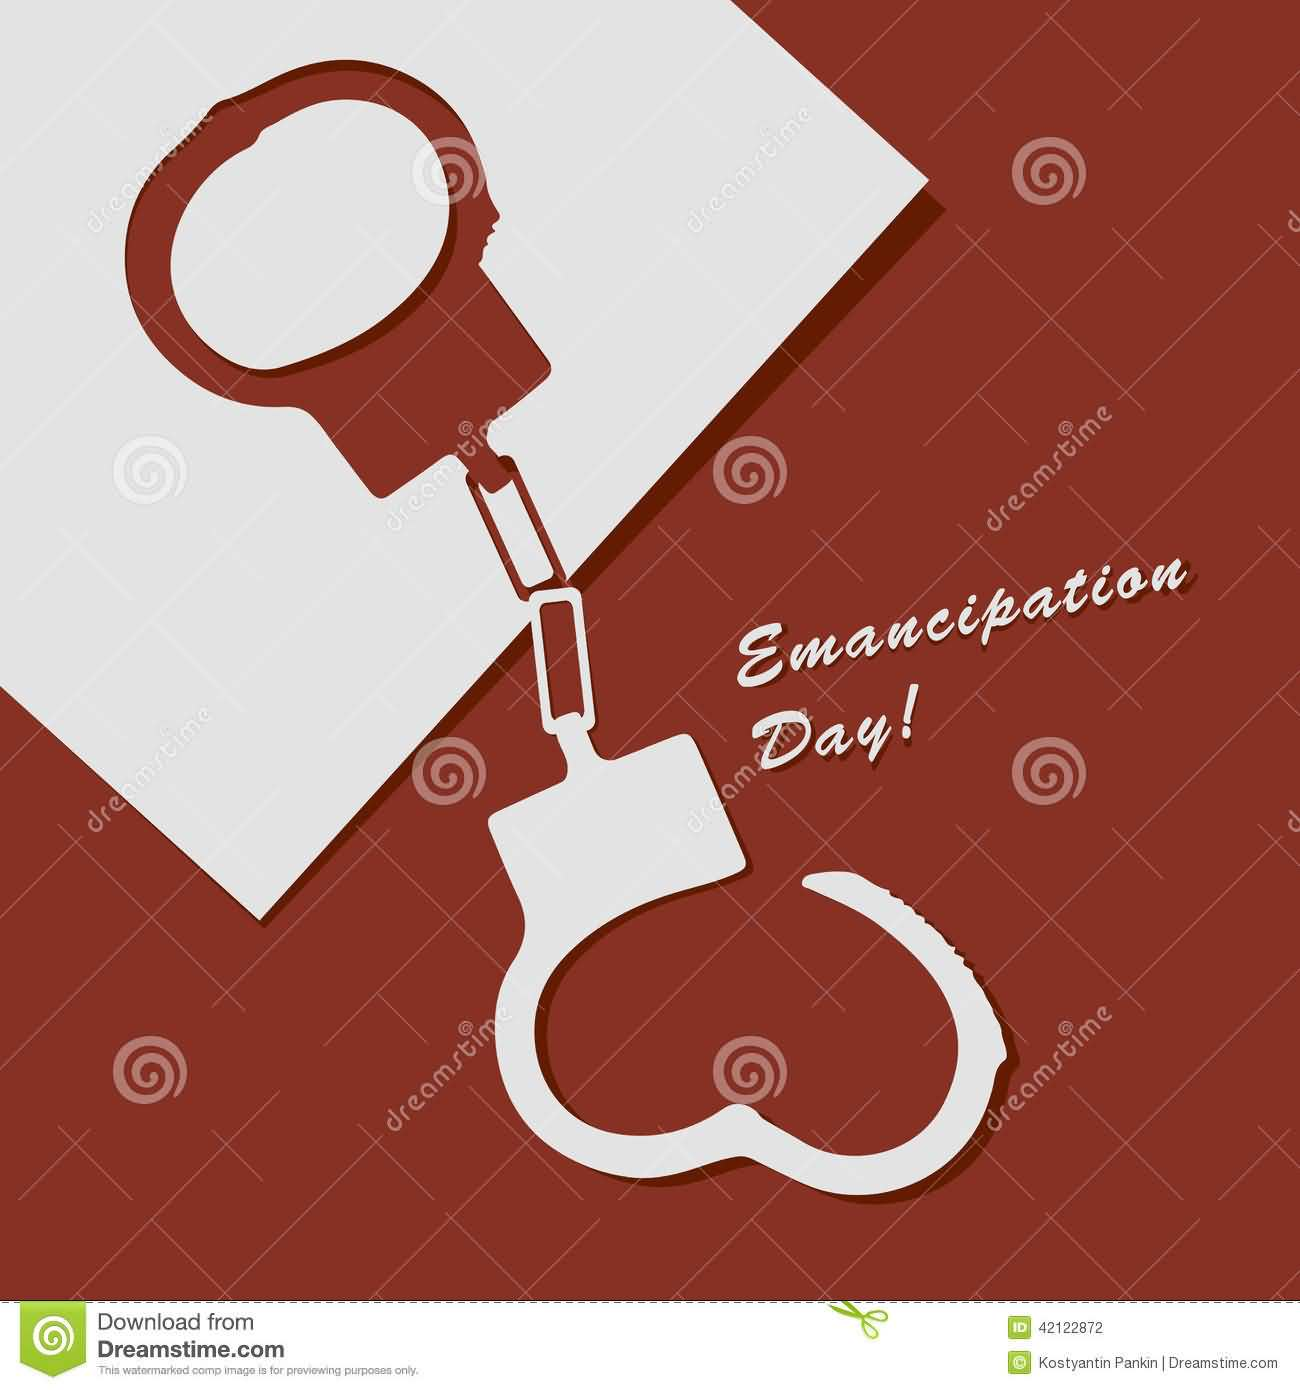 Emancipation Day Handcuff Illustration